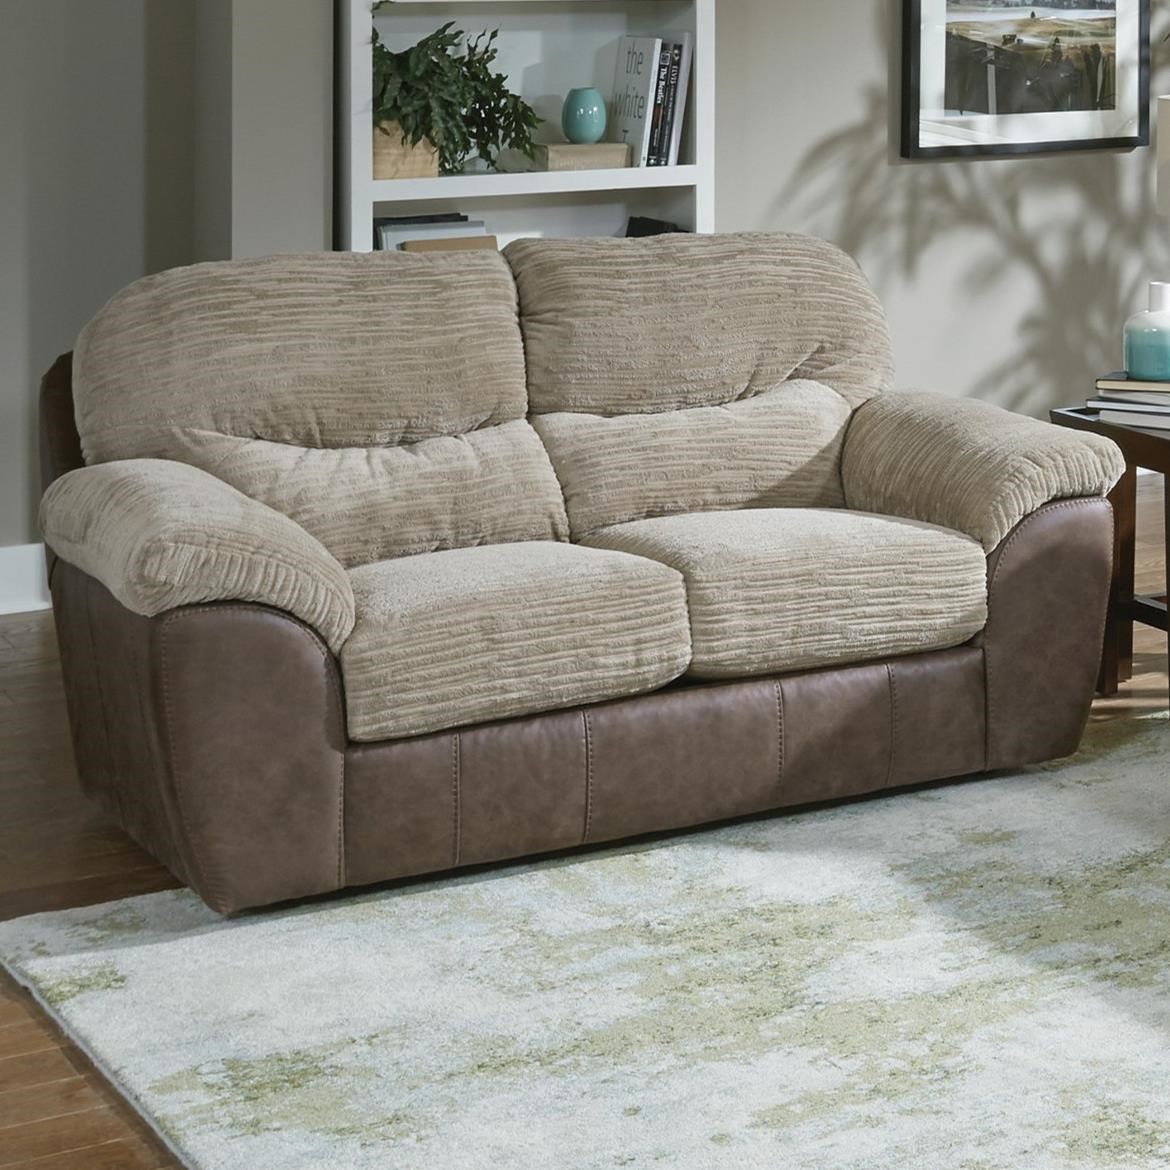 McMahon Gliding Loveseat by Jackson Furniture at Northeast Factory Direct